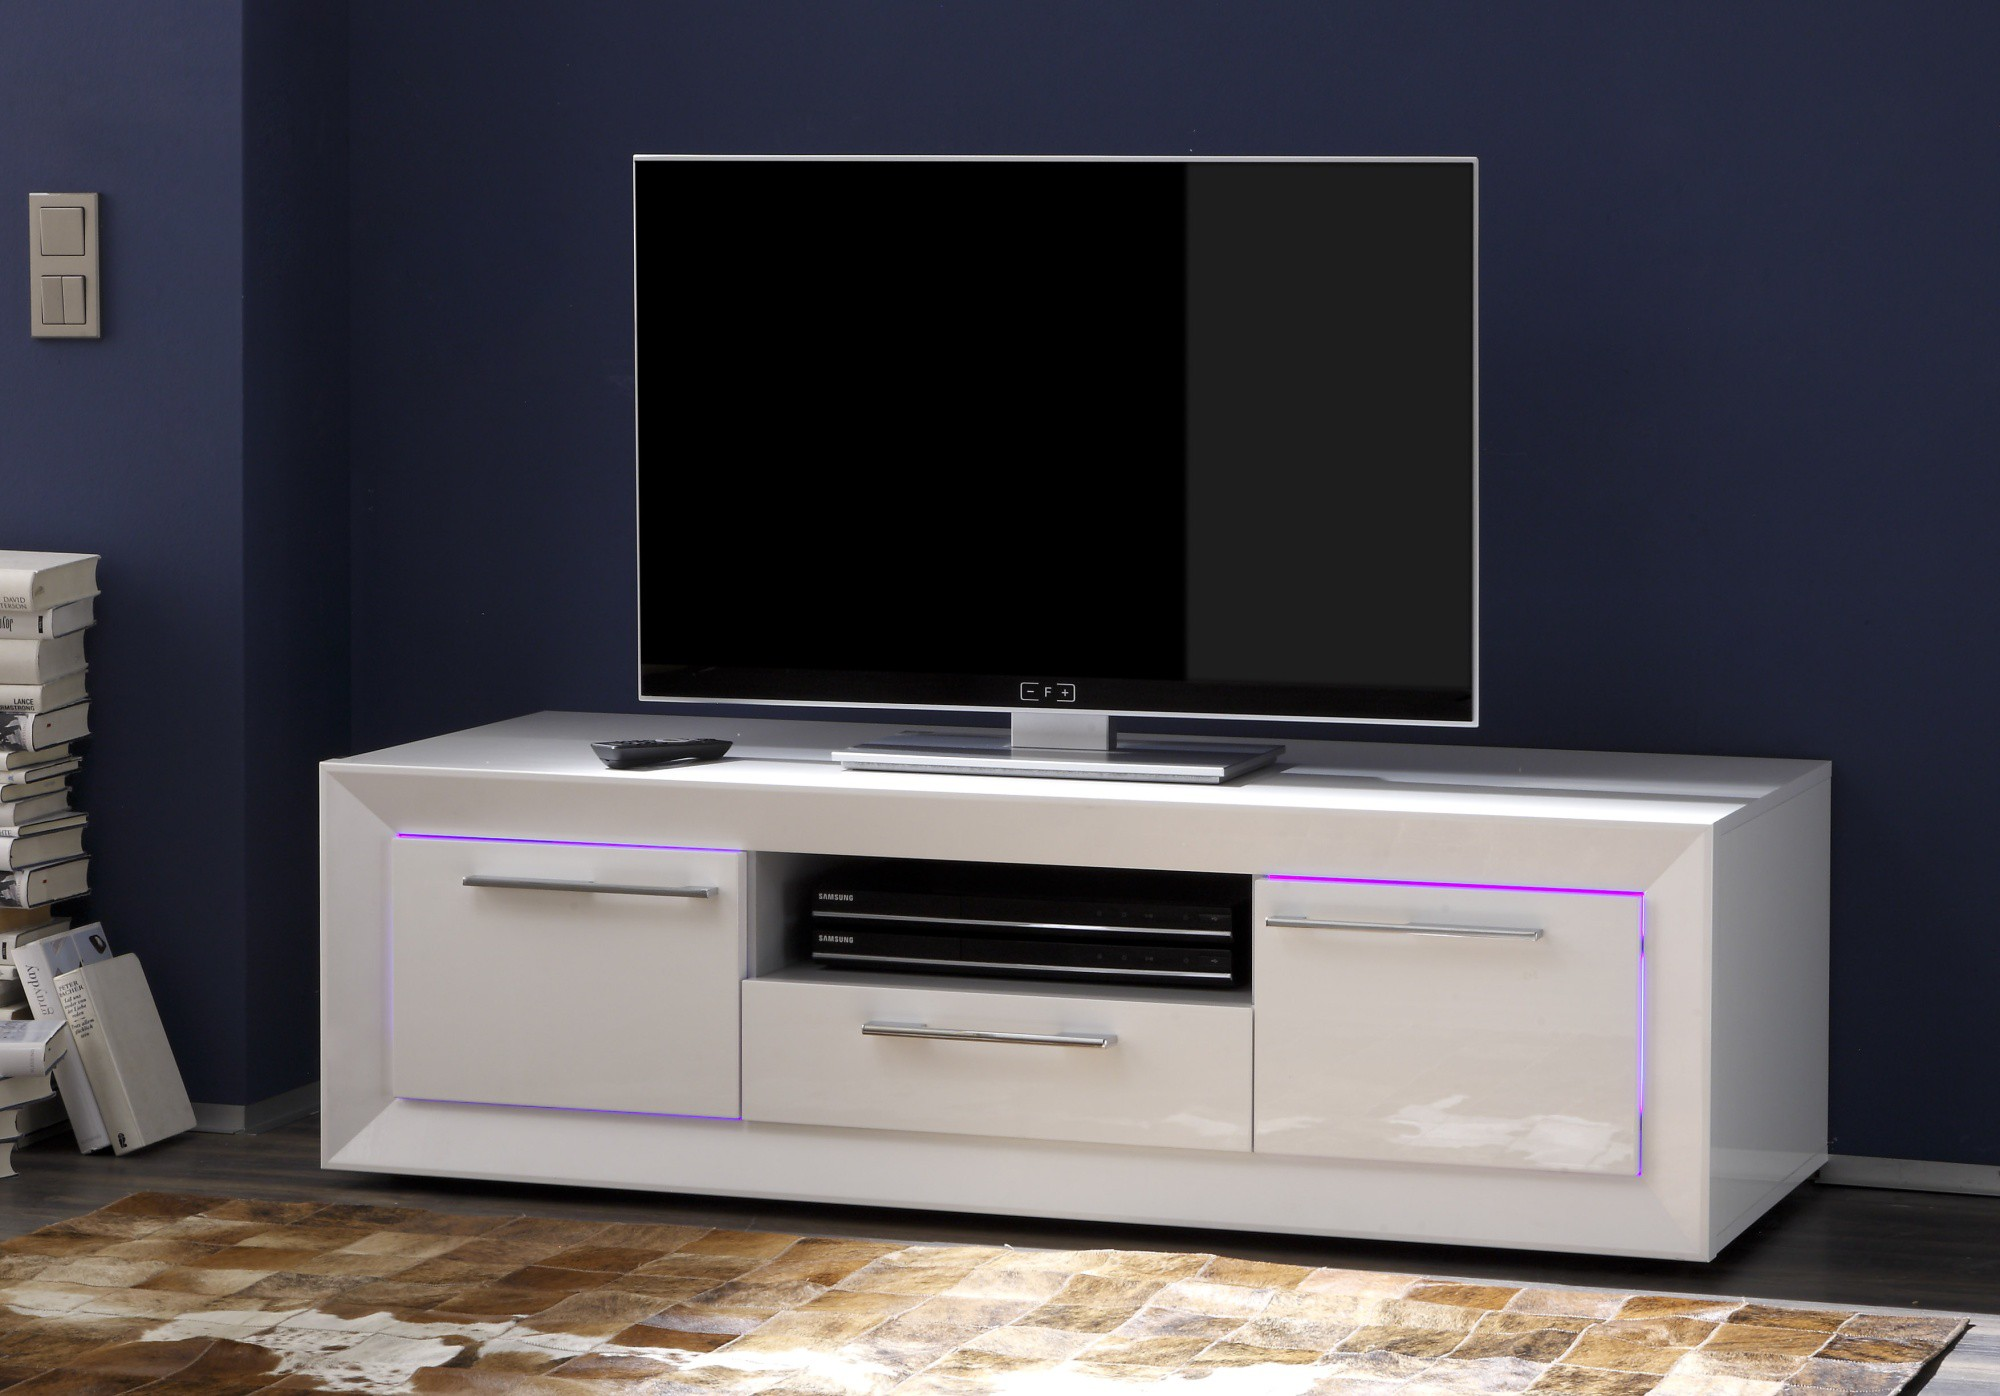 Modele Meuble Tv Id Es De D Coration Int Rieure French Decor # Modele De Meuble De Television